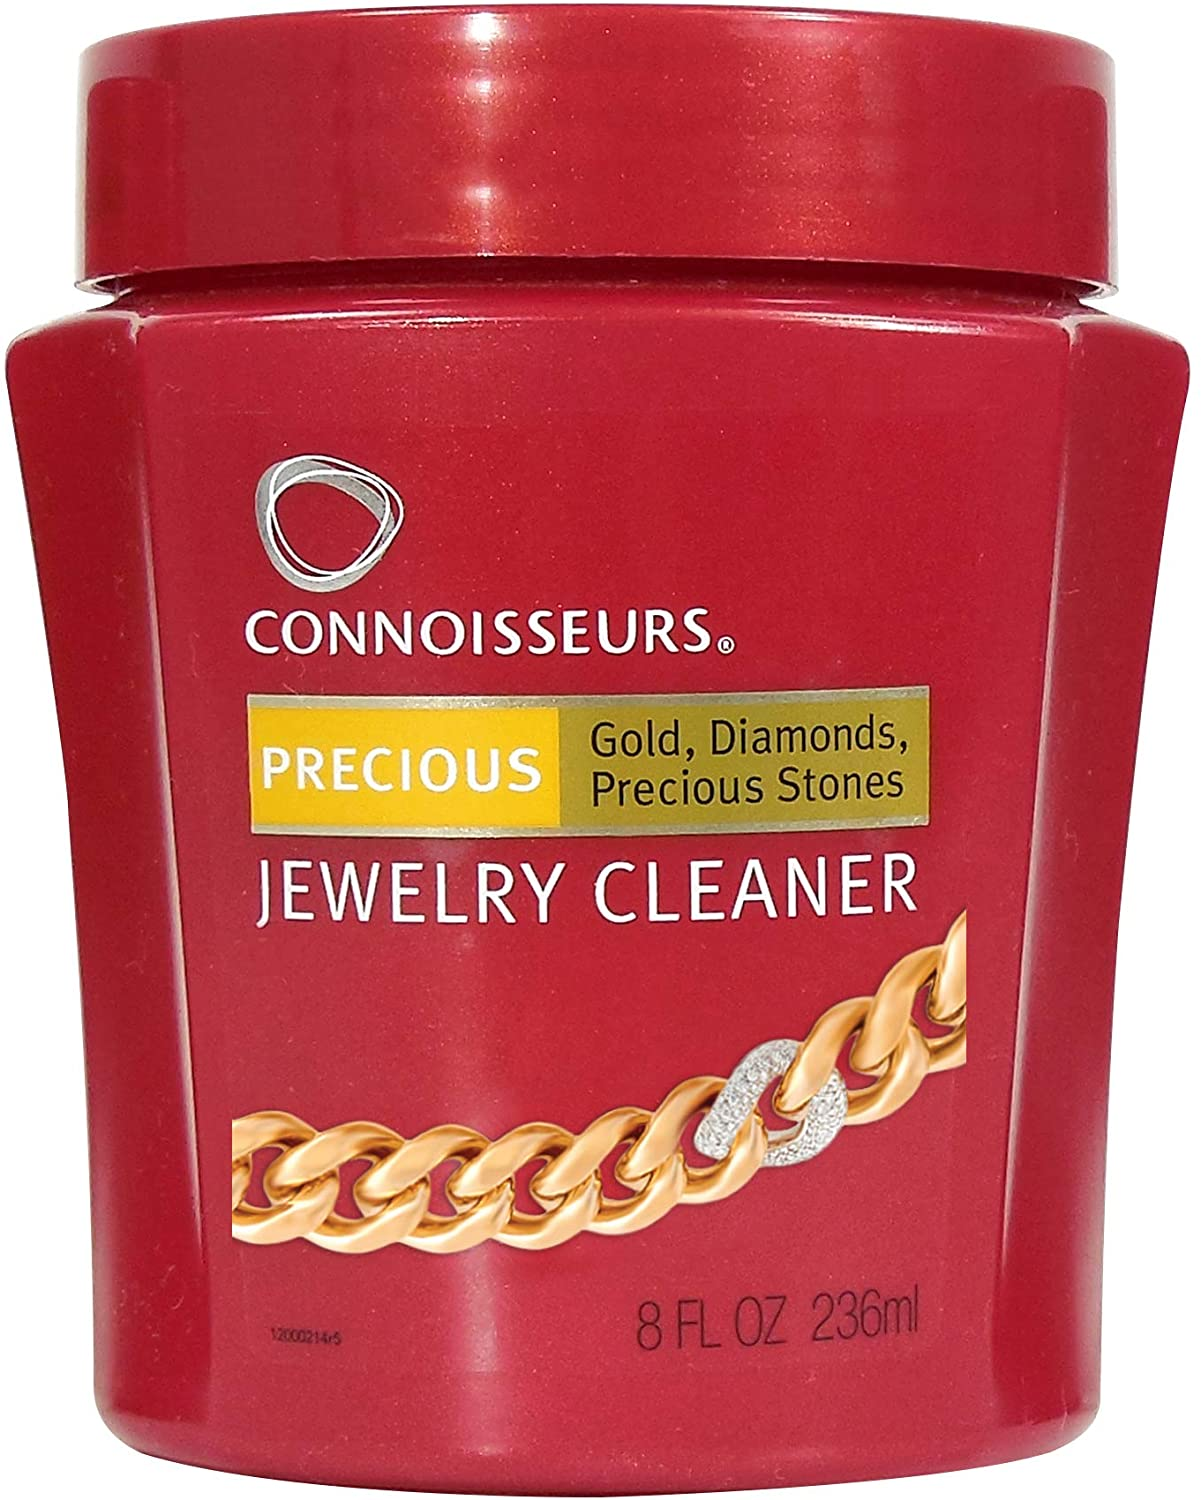 Connoisseurs Precious Jewelry Cleaner 236ml For Gold Diamond Stone Cleaning